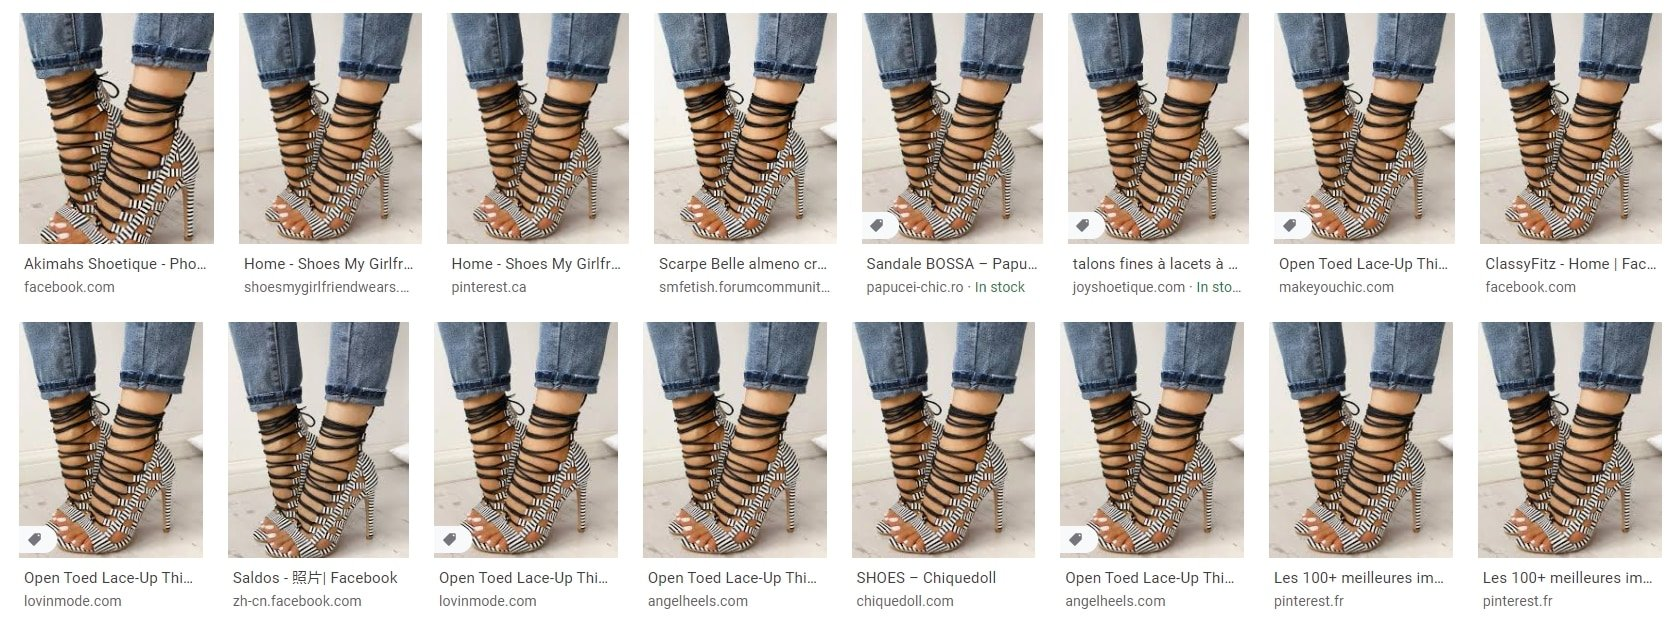 The product images used on Chic Me and IVRose are also used by many other websites